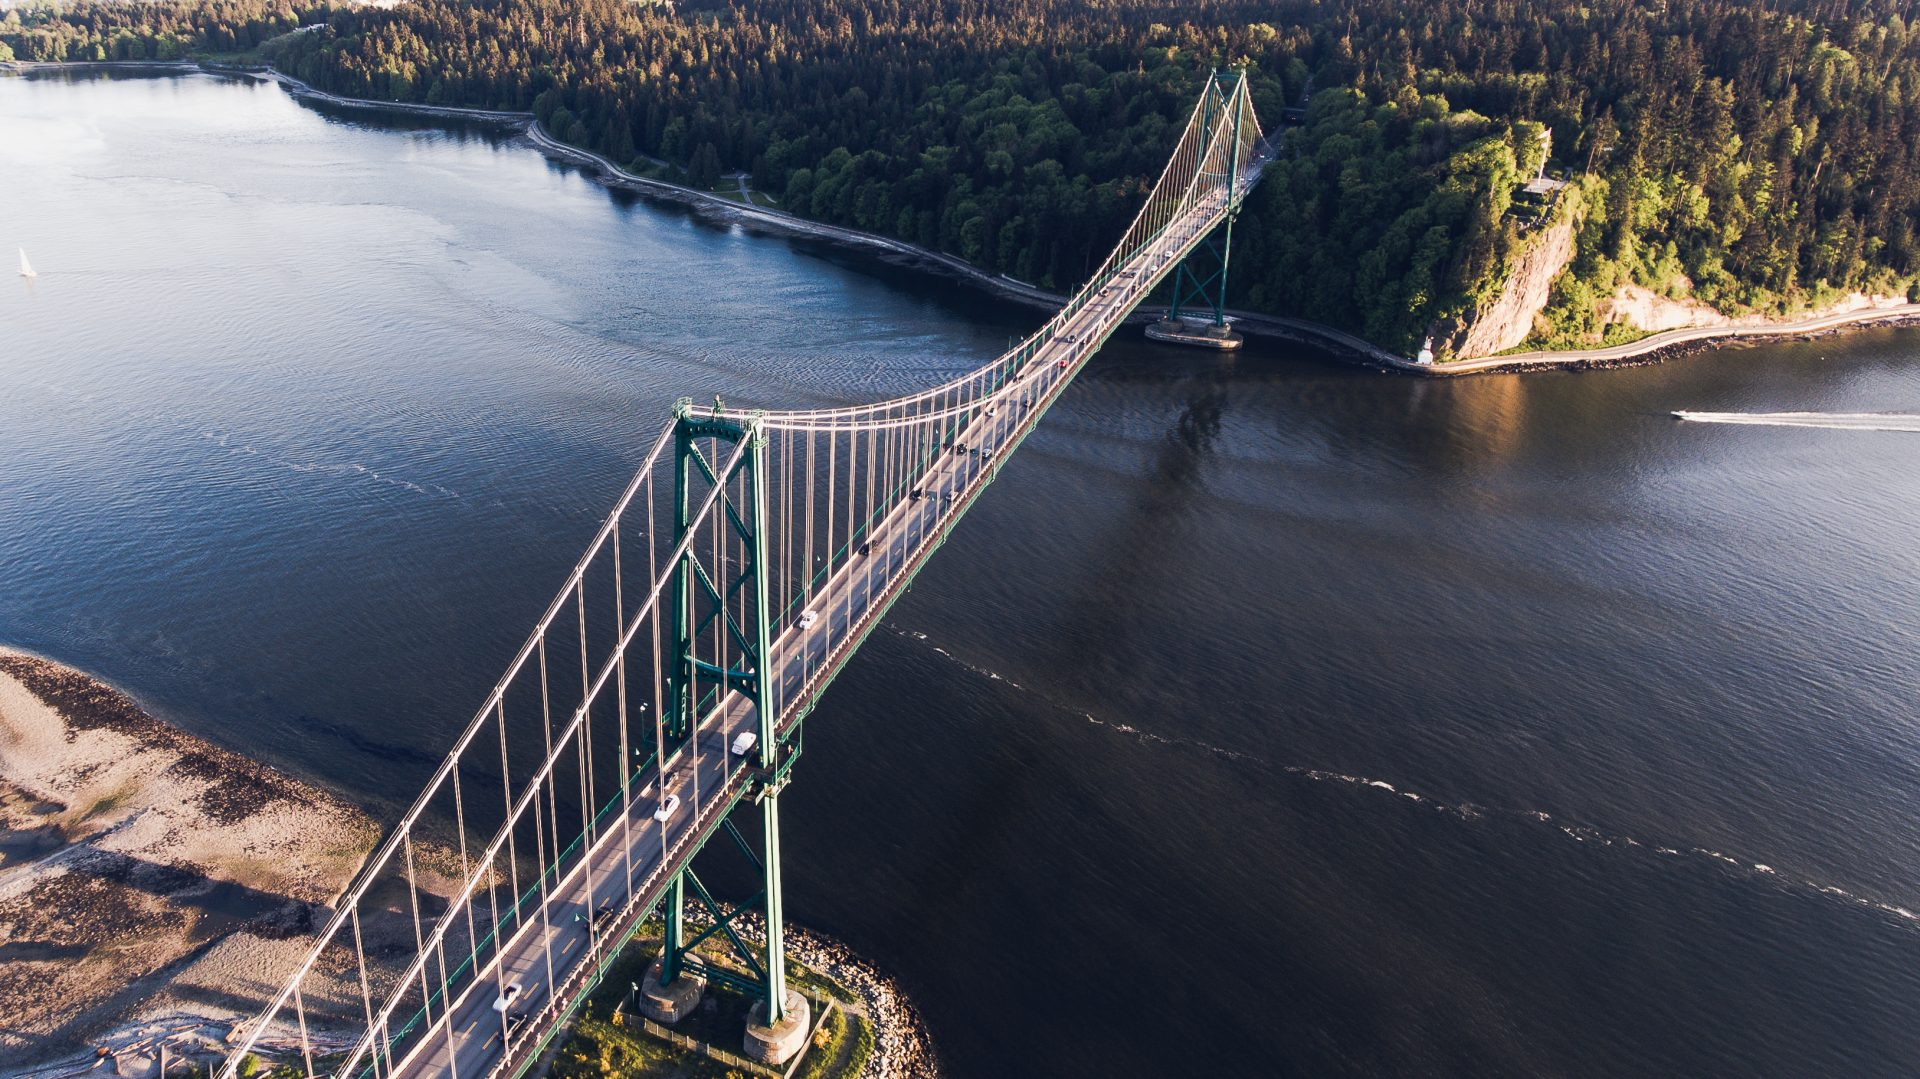 Vancouver Police helped rescue paddleboarders by Lions Gate Bridge